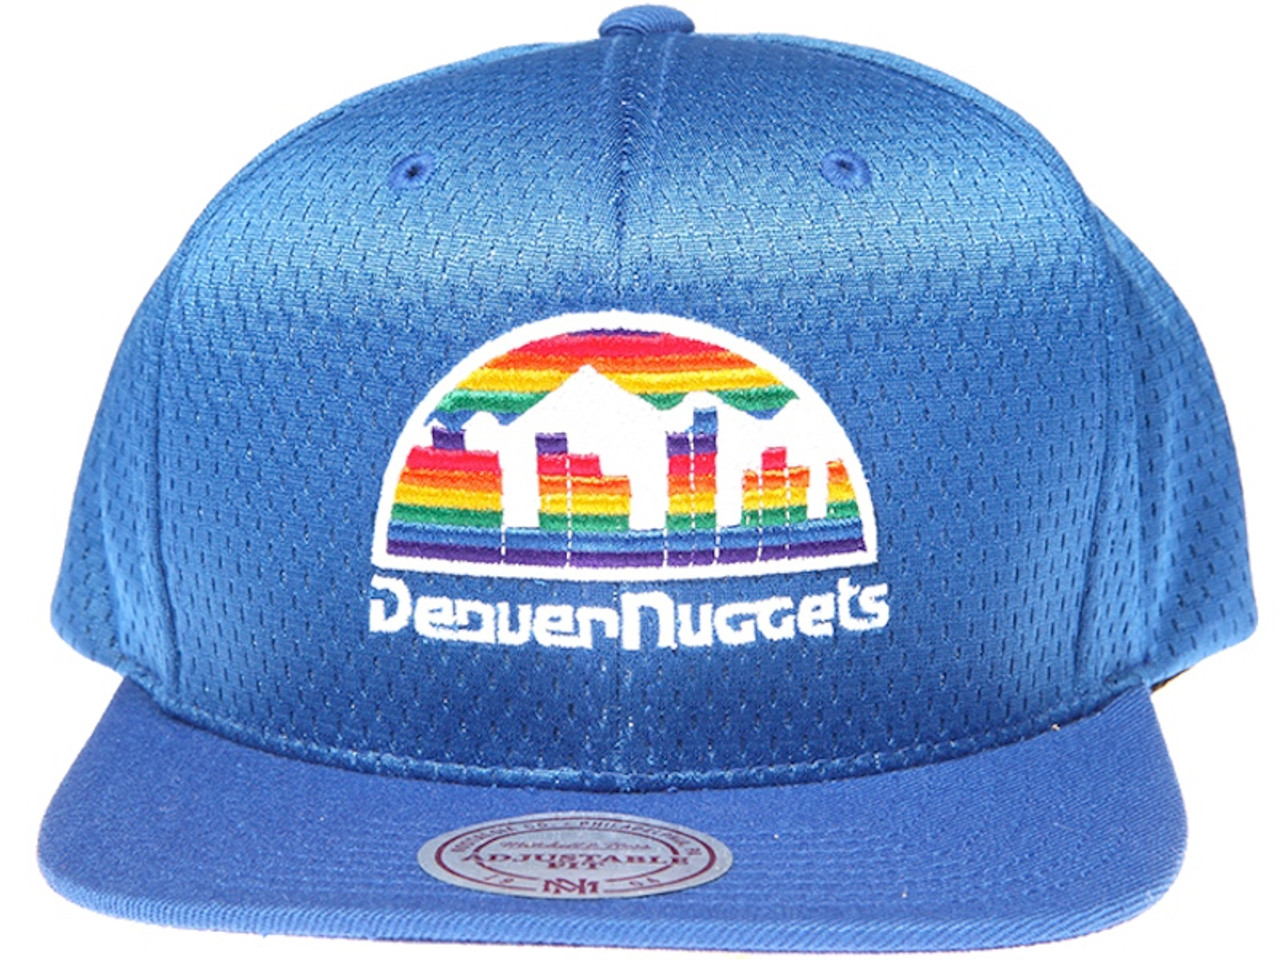 arriving incredible prices closer at czech denver nuggets mitchell ness nba under over snapback cap ...